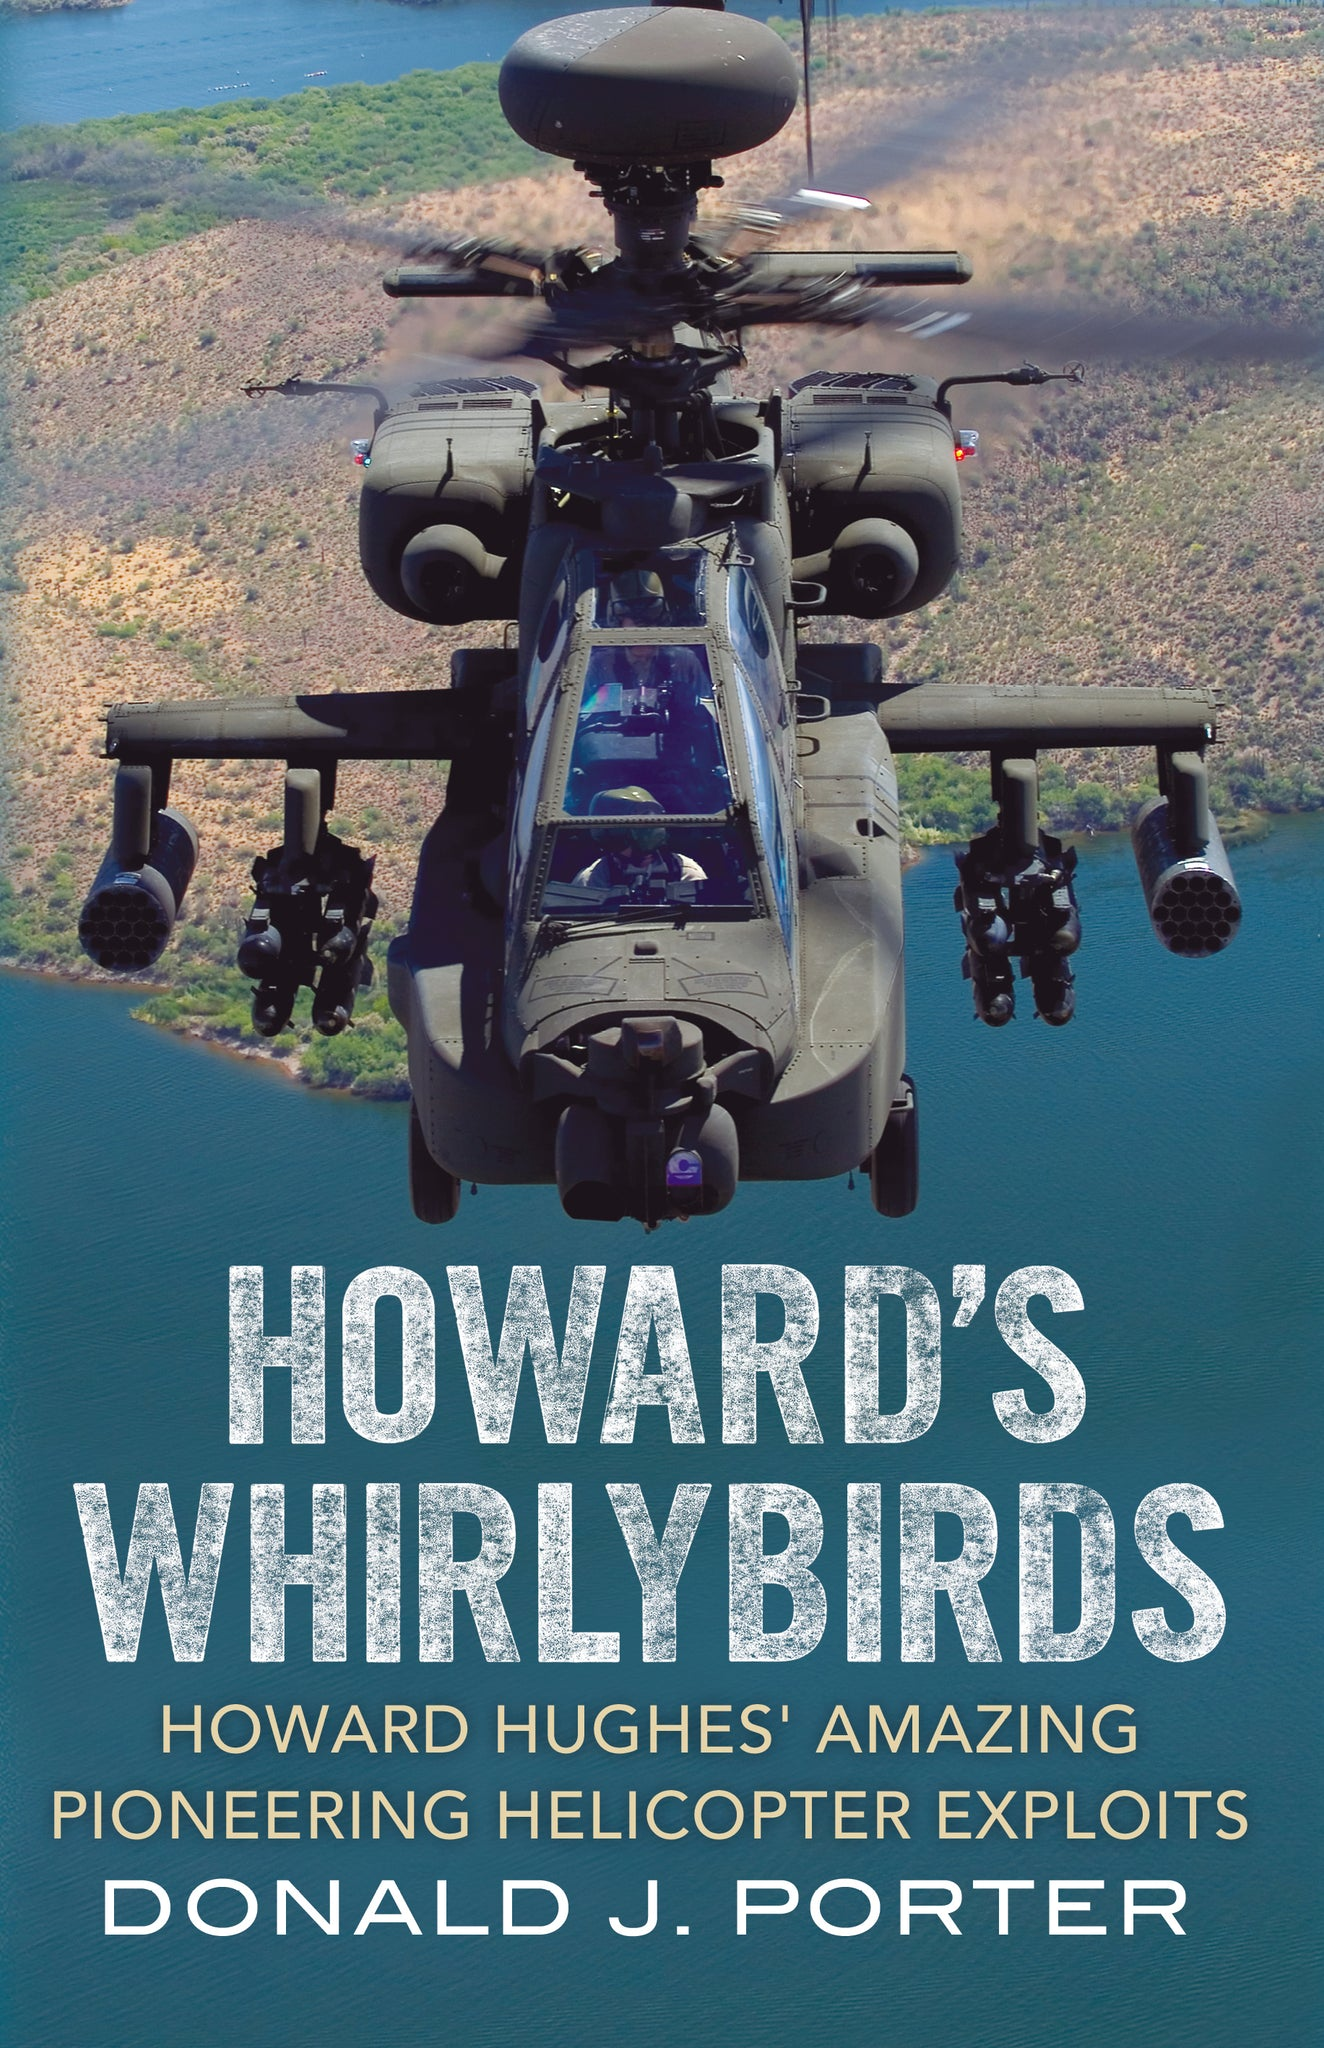 Howard's Whirlybirds: Howard Hughes' Amazing Pioneering Helicopter Exploits - available now from Fonthill Media